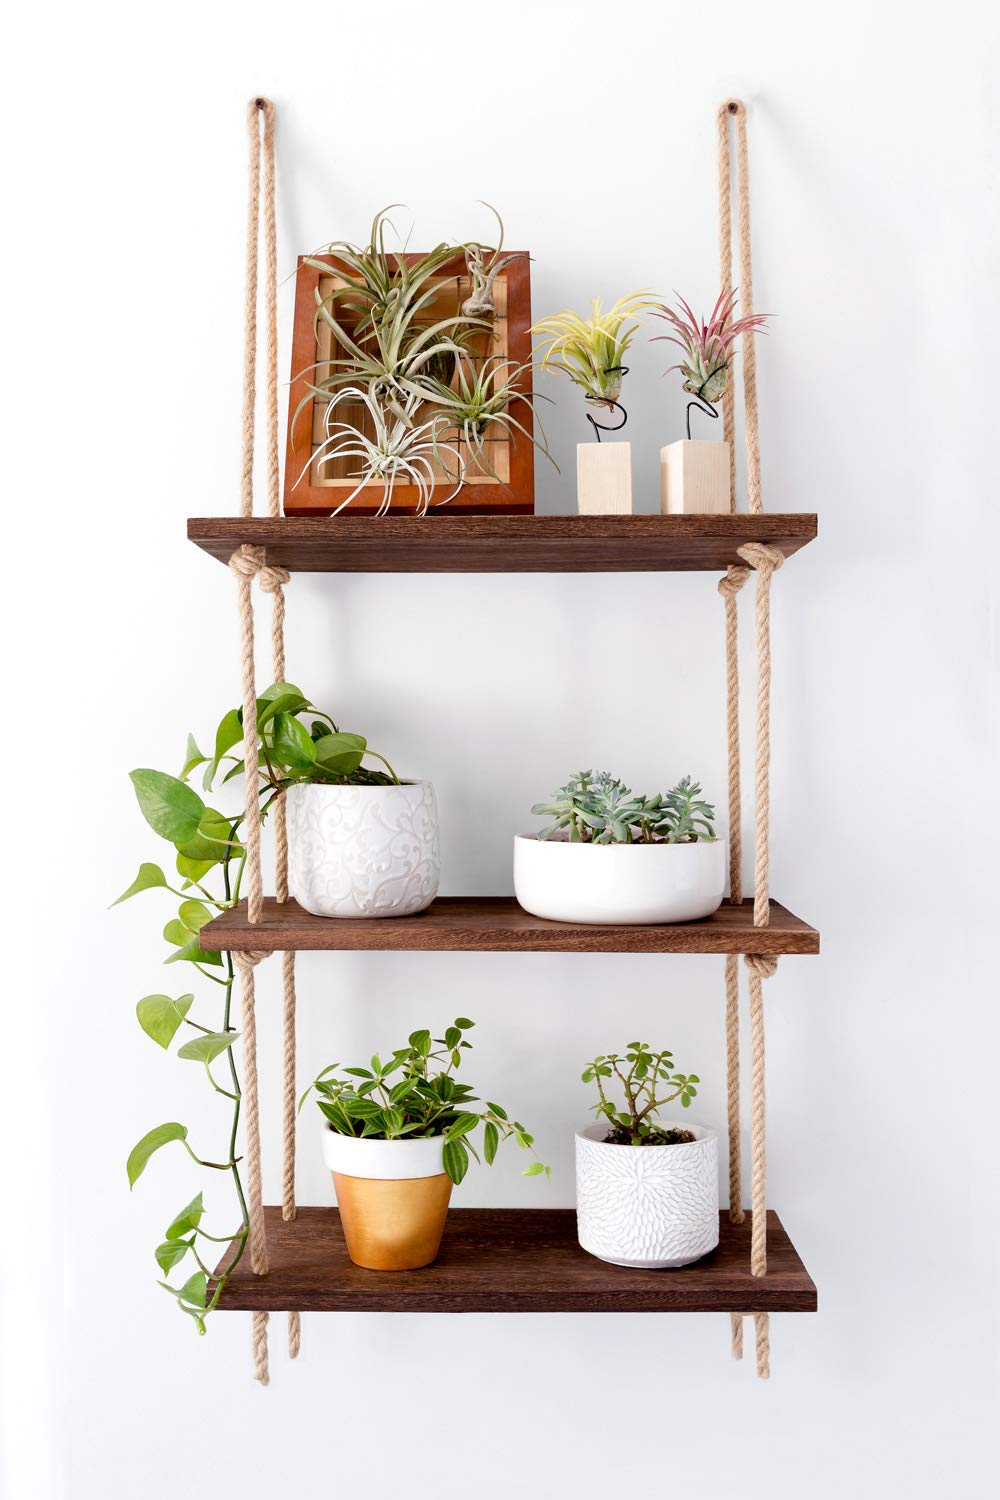 Mkono Wood Hanging Shelf Wall Swing Storage Shelves Jute Rope Organizer Rack, 3 Tier - This wood hanging shelf is the perfect storage and decorate shelf for many rooms in the home. Living room for organize your books, lovely plants or candle, kitchen for storage spices or coffee cups, bathroom to hold towel, makeup or nail polish, bedrooms for display photo frames and mementos. Material: Paulownia wood, jute rope, strong and durable. The props in the picture are not included. Can be installed in window or wall space and incorporated easily into any space, like hang it in store to organize special item. Or will be fun in a garden or porch setting to hold your plants! - wall-shelves, living-room-furniture, living-room - 71FYwUGLcKL -